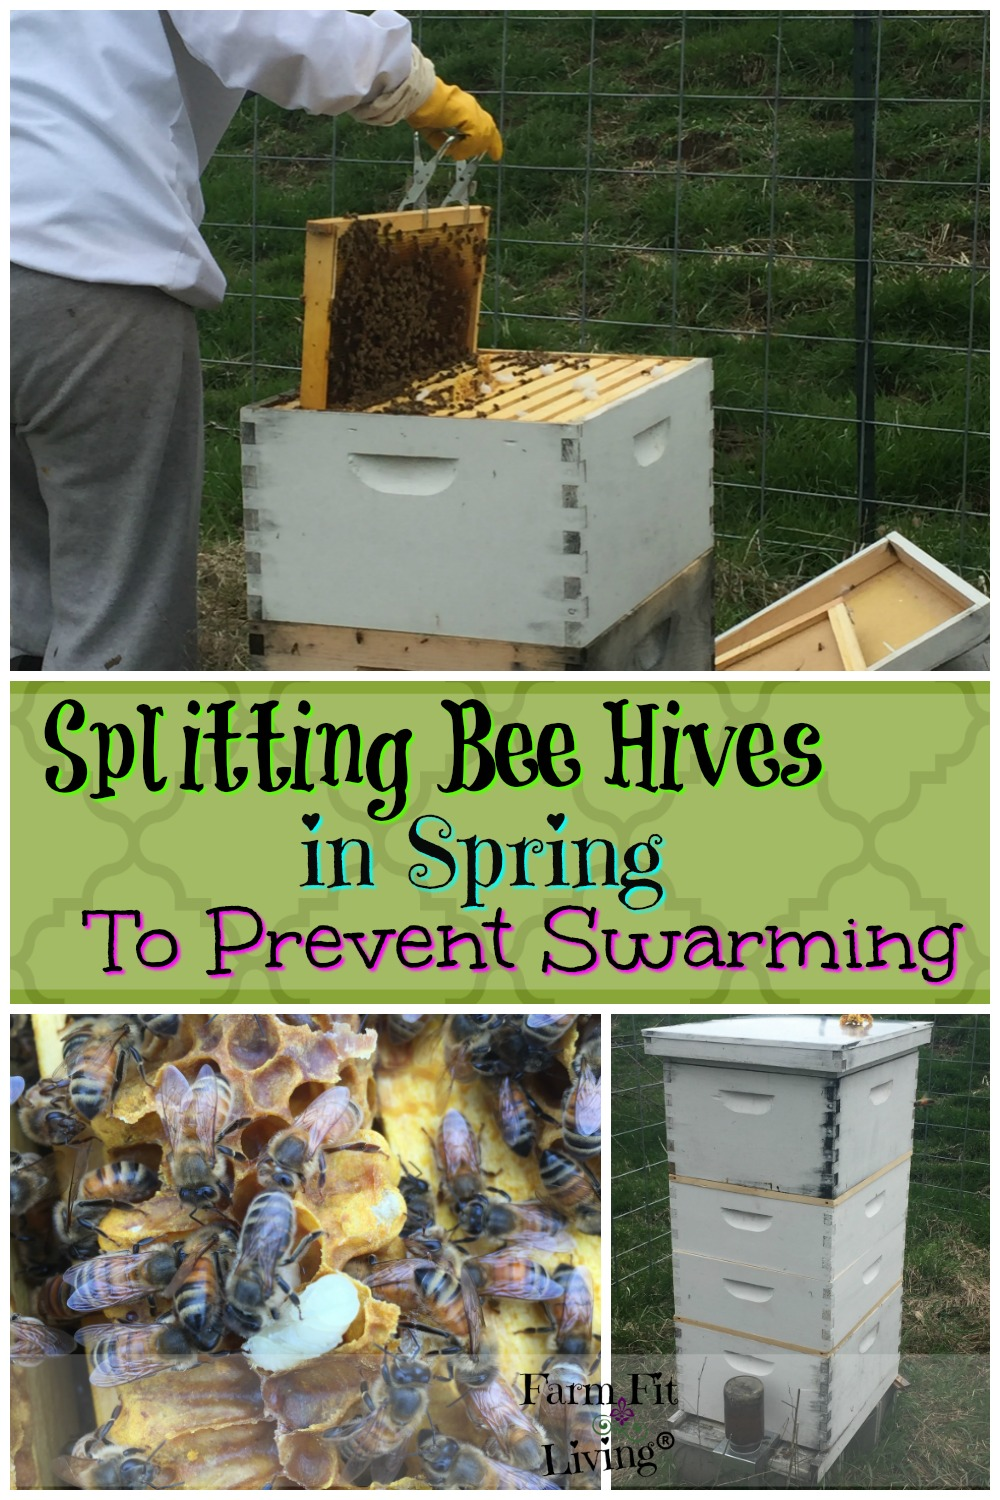 When you look into your hives in the spring, do you see a huge population of bees? If so, you should think about splitting bee hives in Spring to prevent swarming.